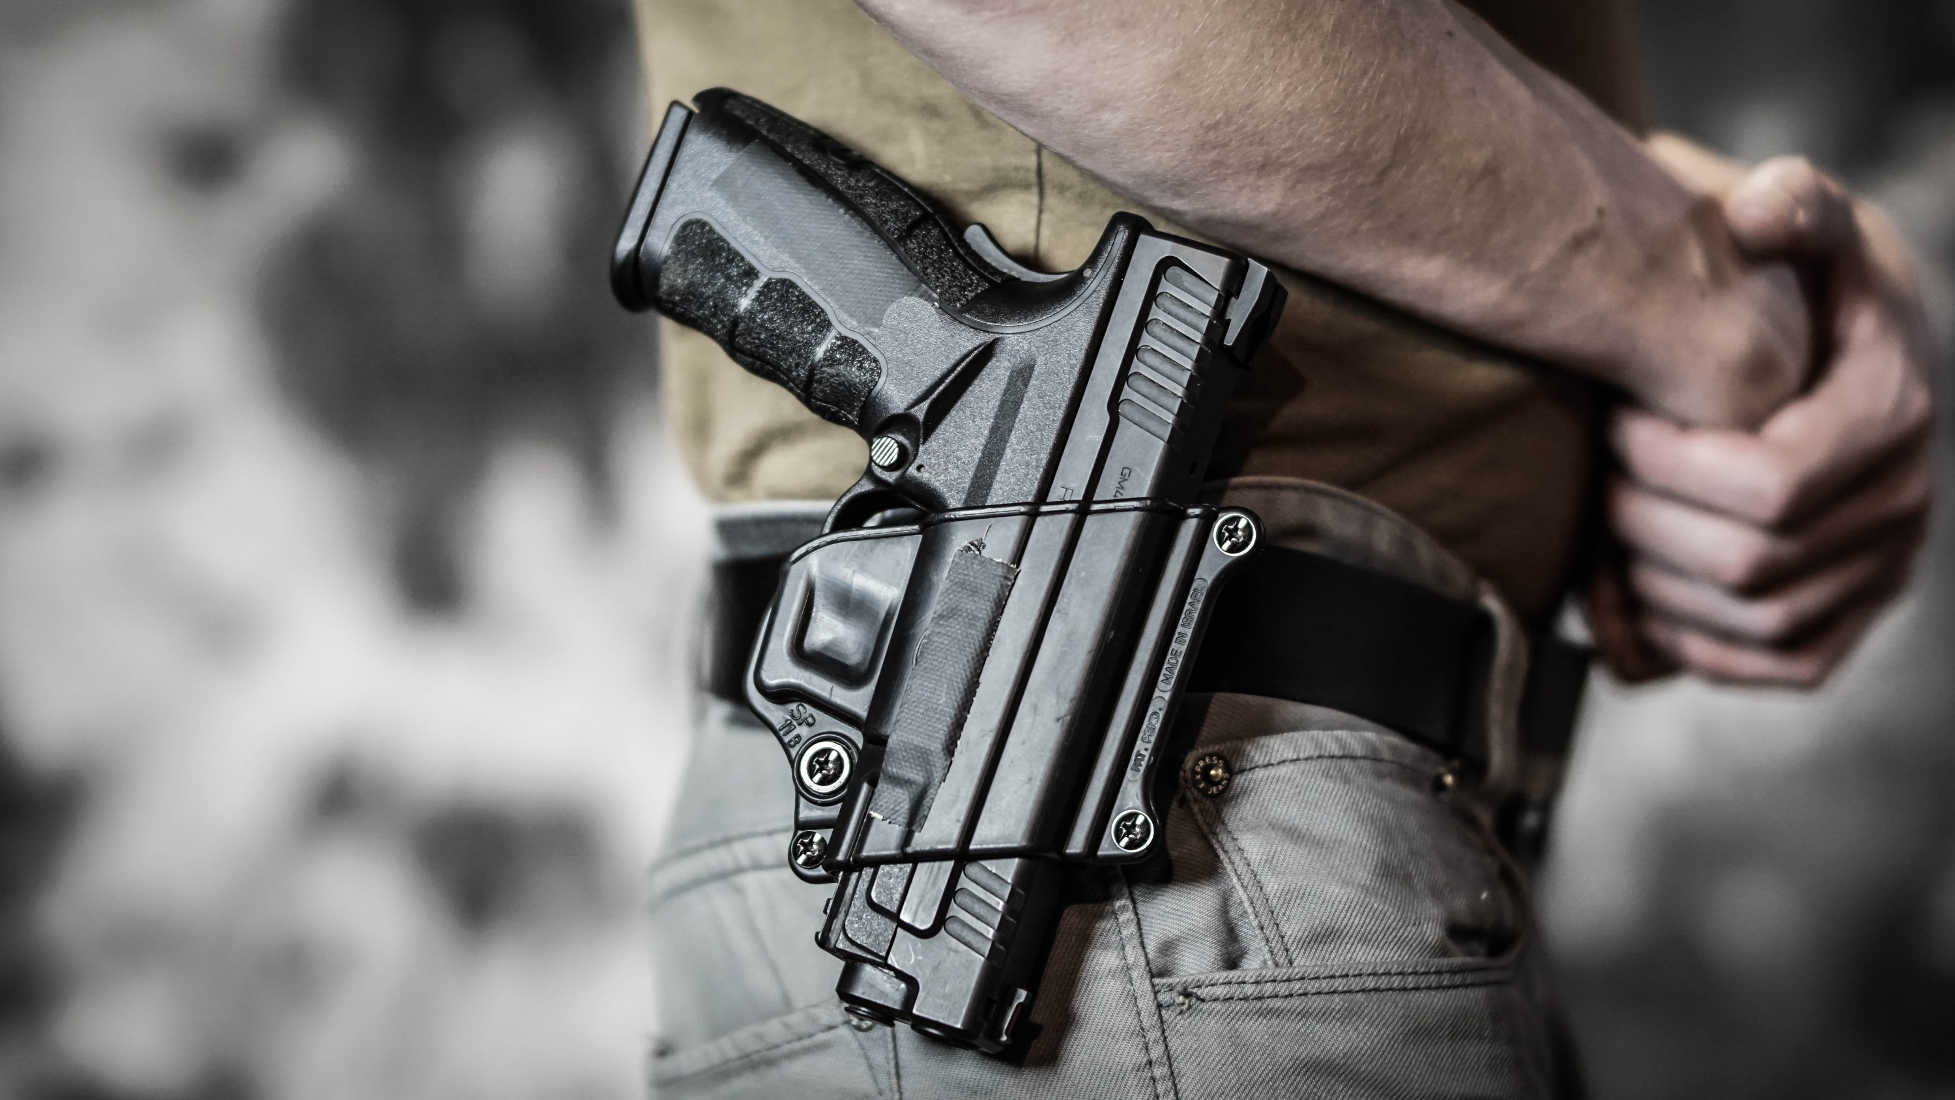 BREAKING: Michigan Latest State to Consider Constitutional Carry Bill